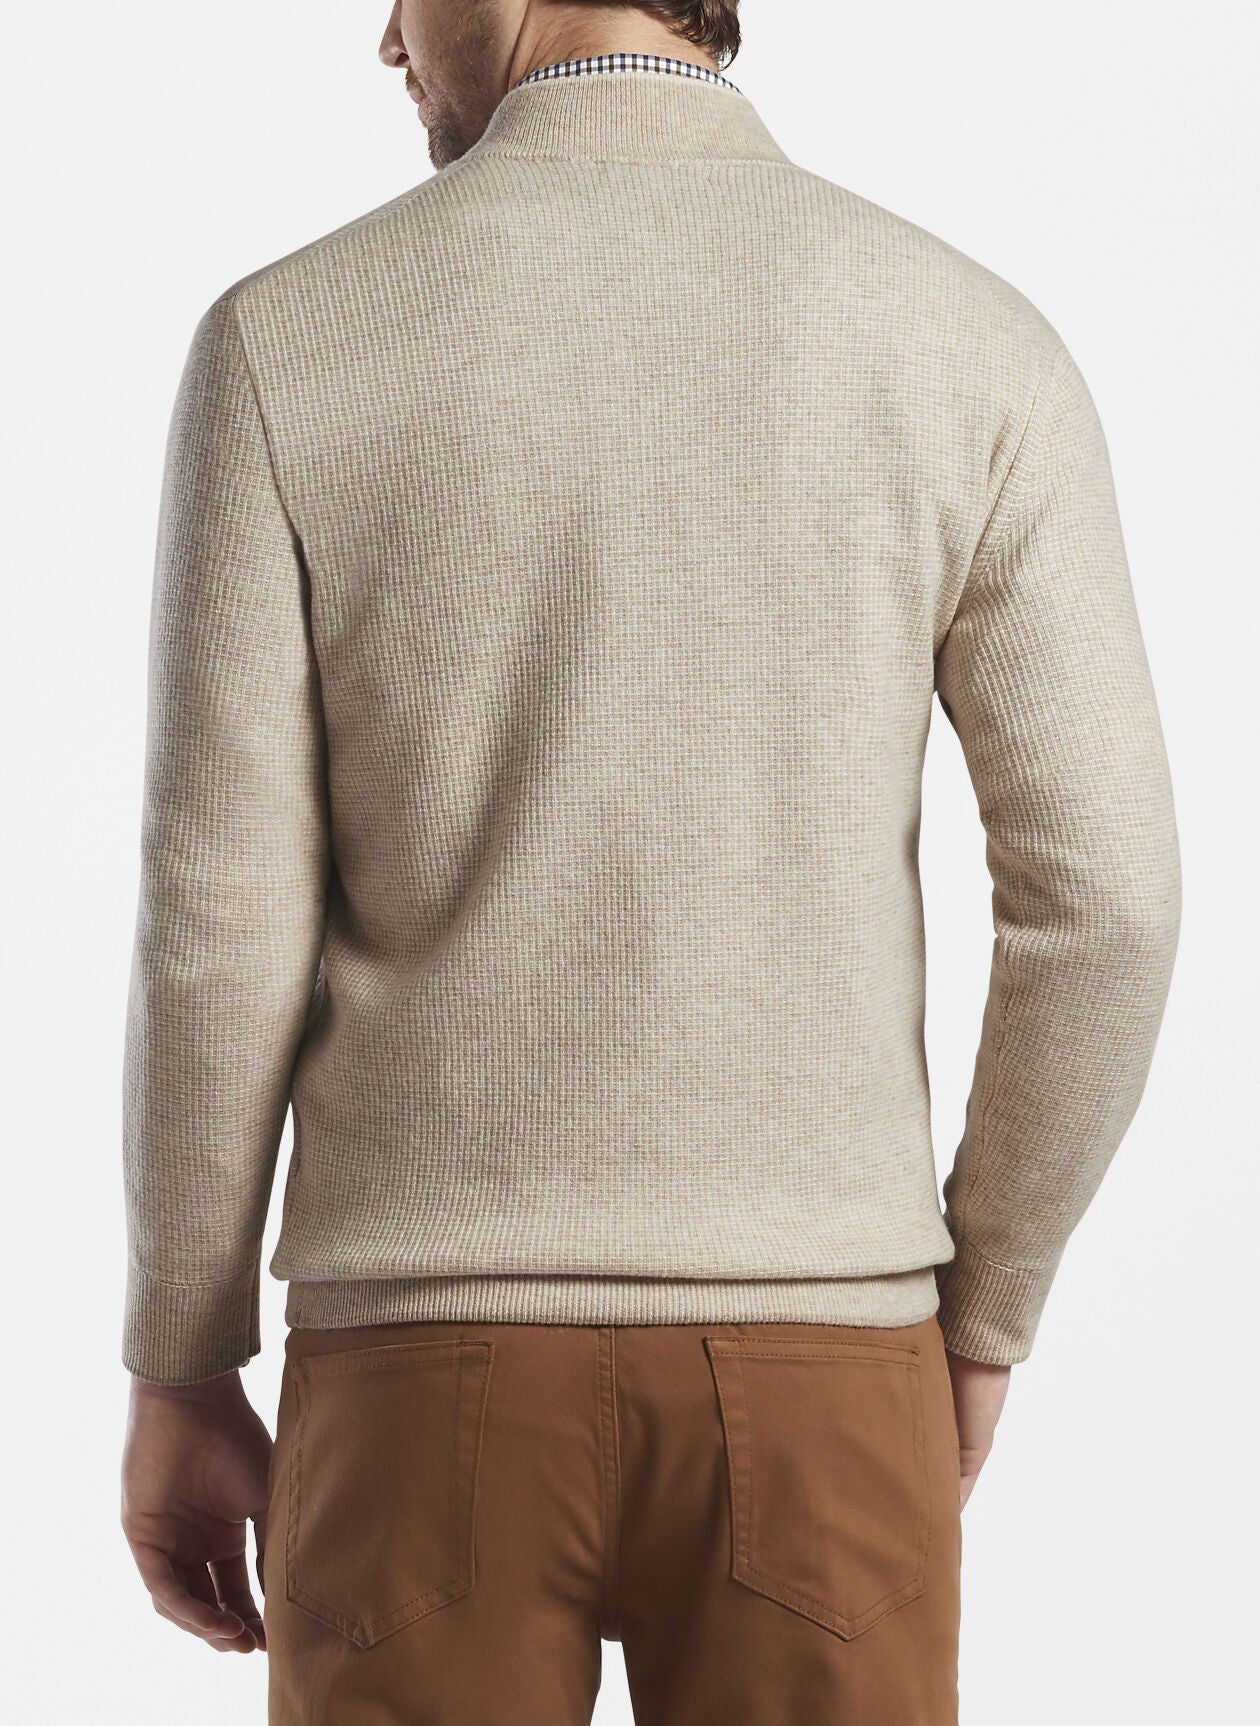 Peter Millar - Wool/Cashmere 1/4 Zip Sweater